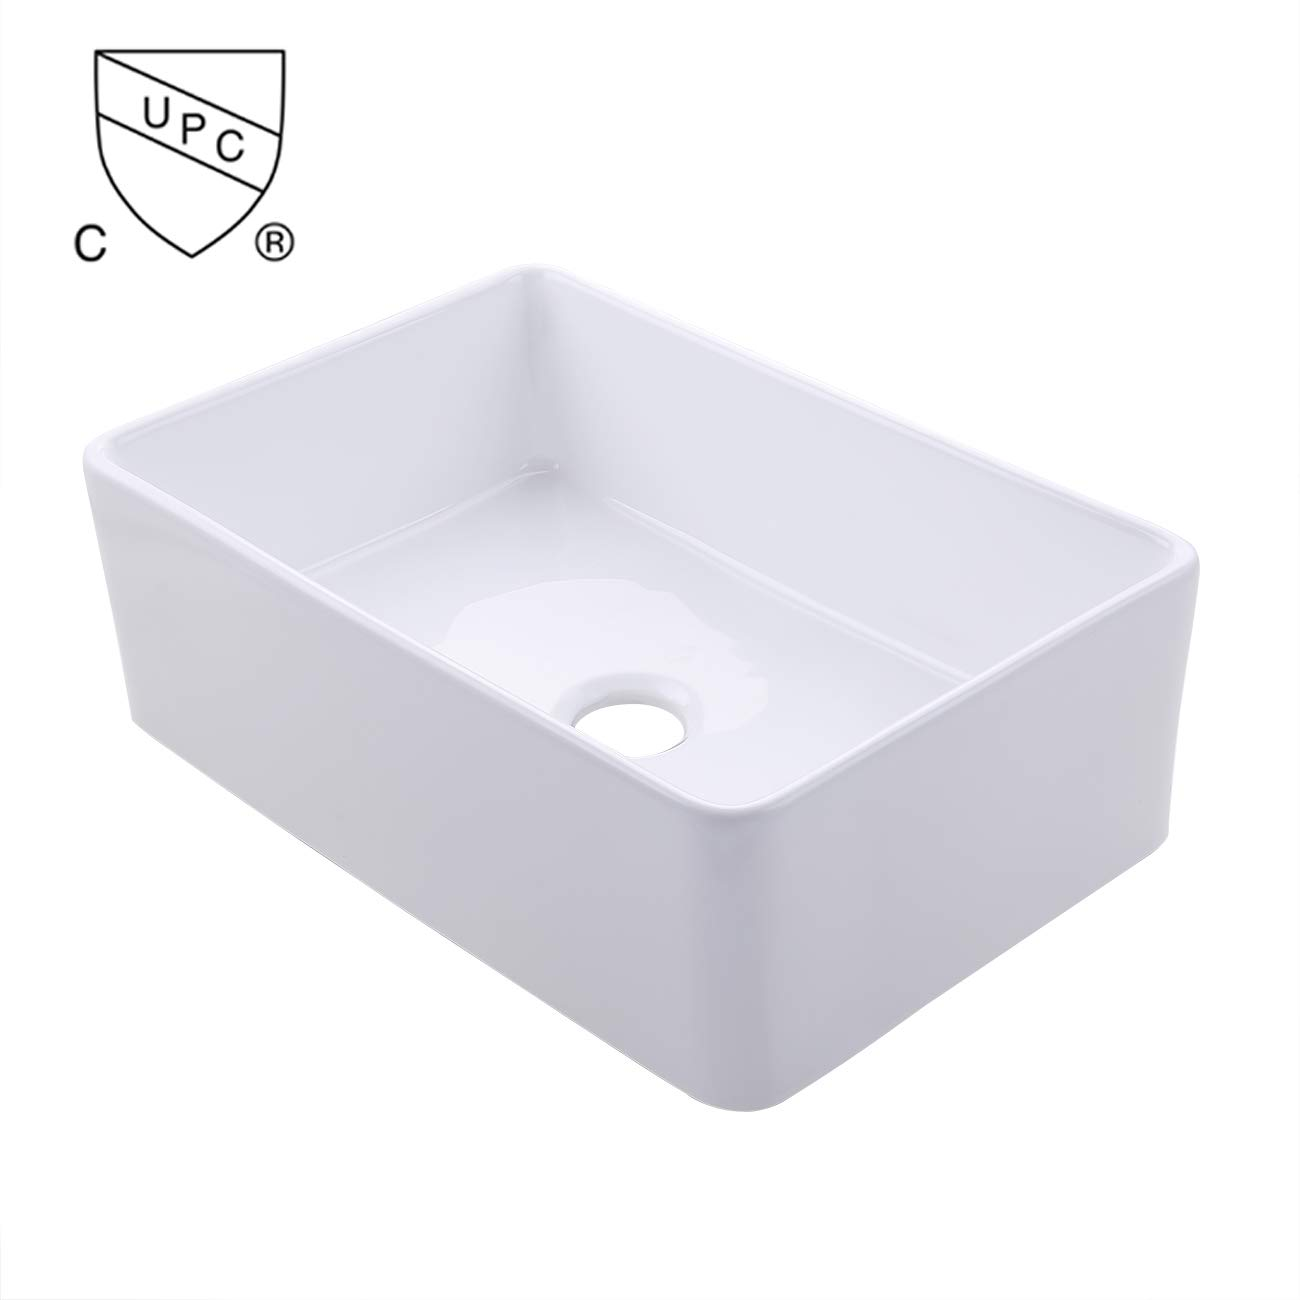 KES cUPC Fireclay Sink Farmhouse Kitchen Sink (30 Inch Porcelain Undermount Rectangular White) BVS117 by Kes (Image #2)